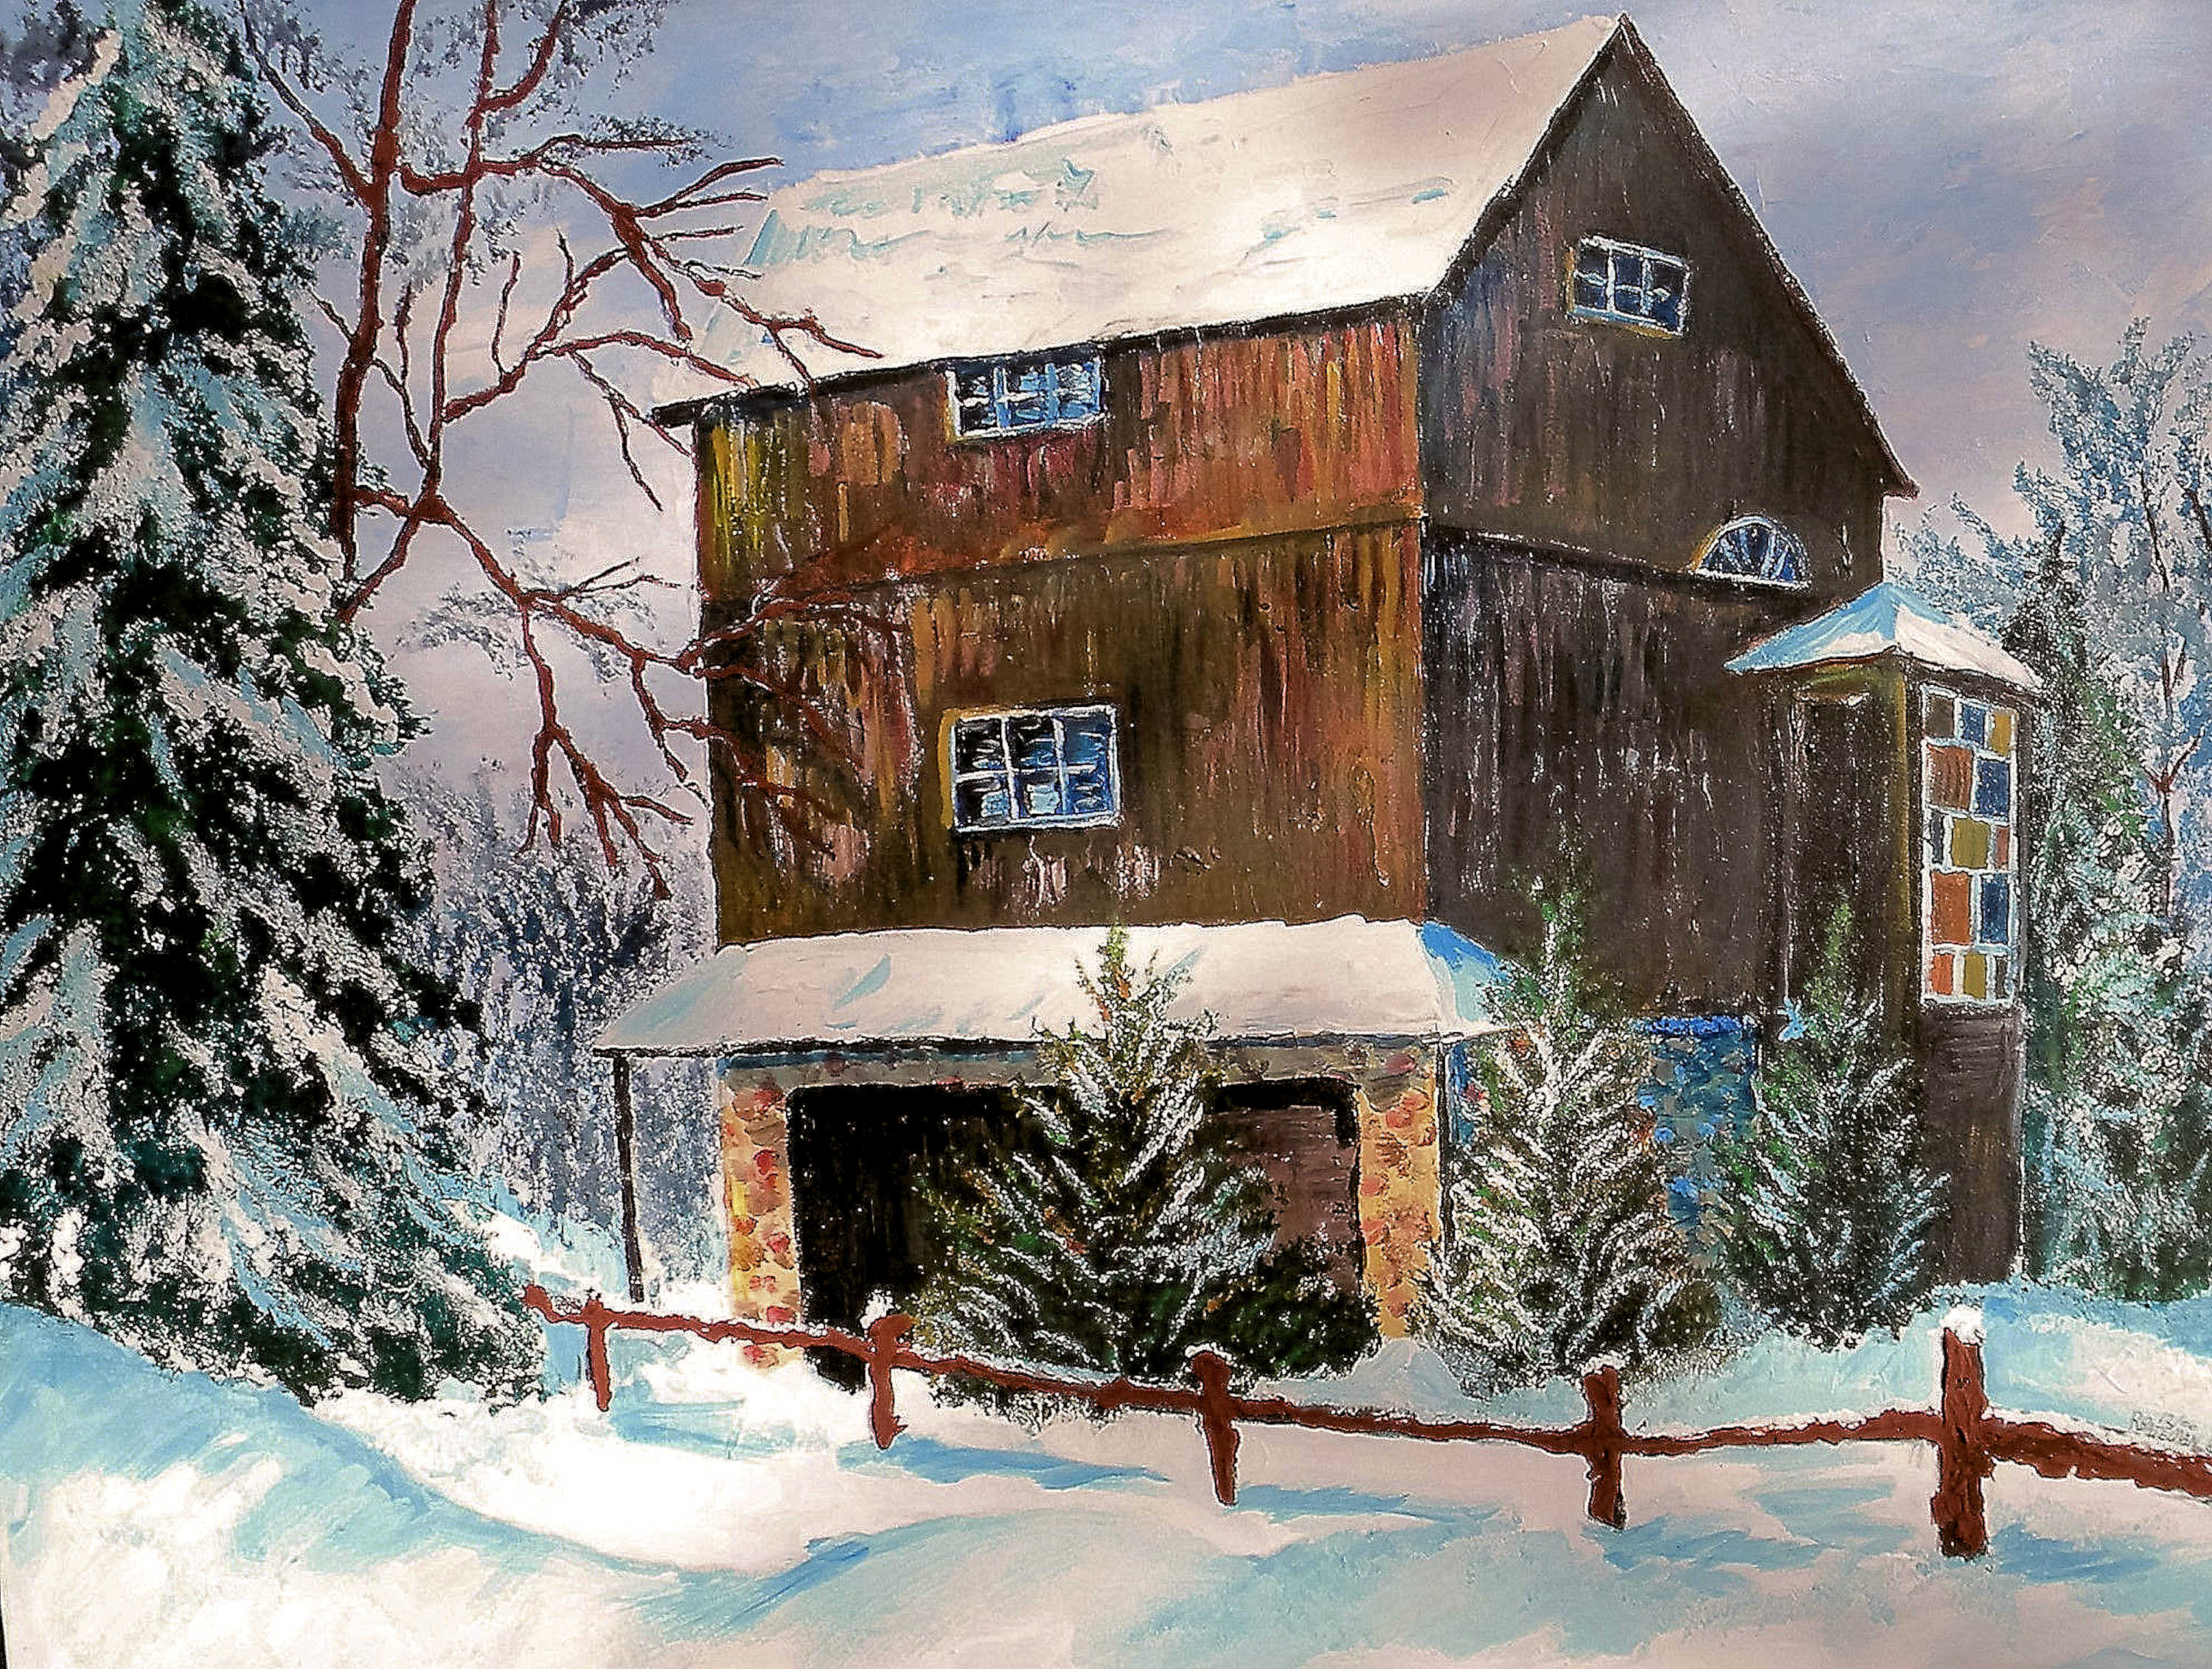 MOM AND DADS BARN  30X40 IN  $500   HIGHLIGHTED WITH GLOW IN DARK LUMINESCENT PAINT